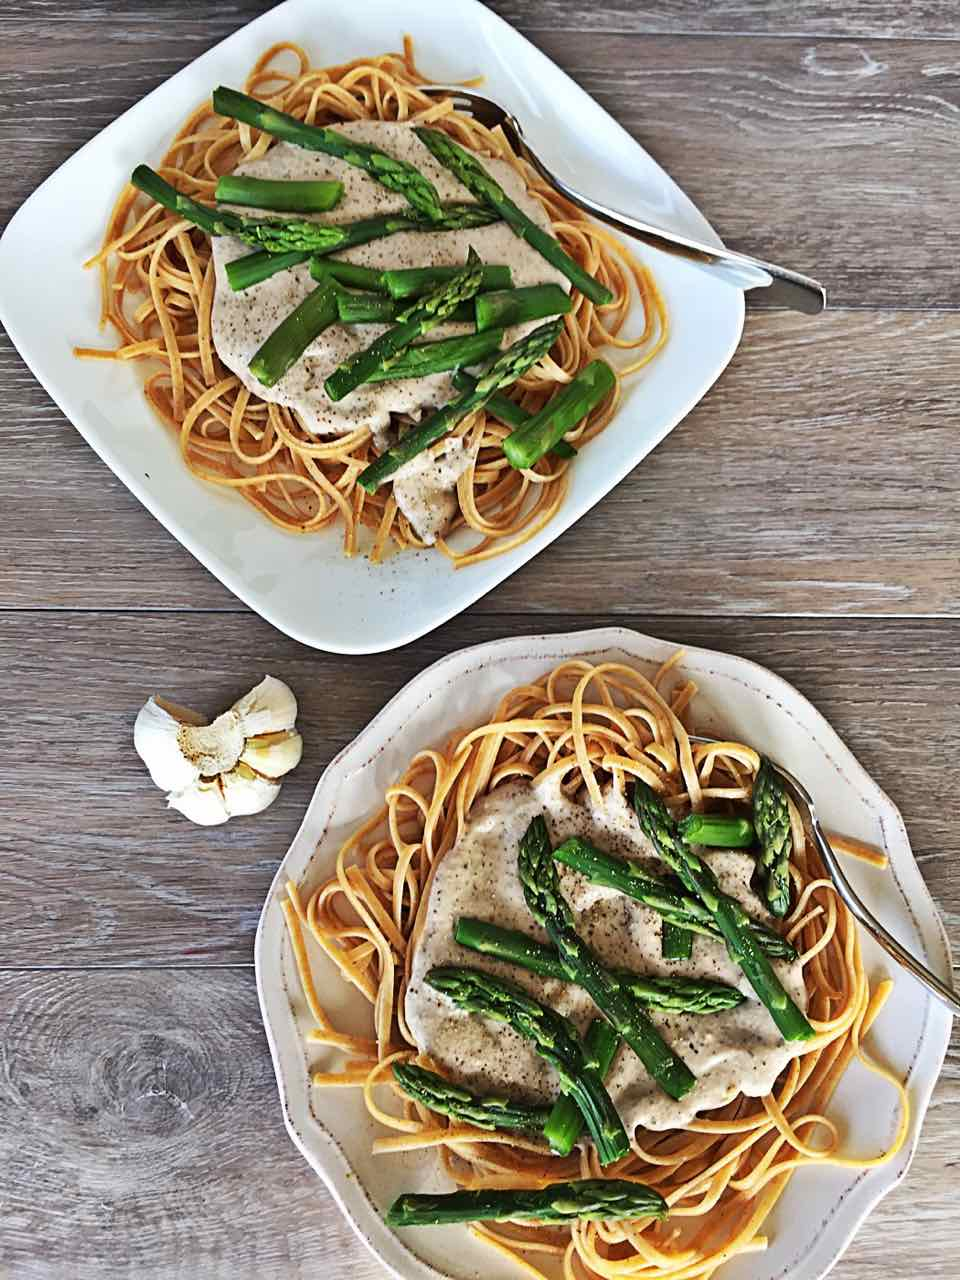 Image of two plates of vegan creamy pesto linguine with asparagus